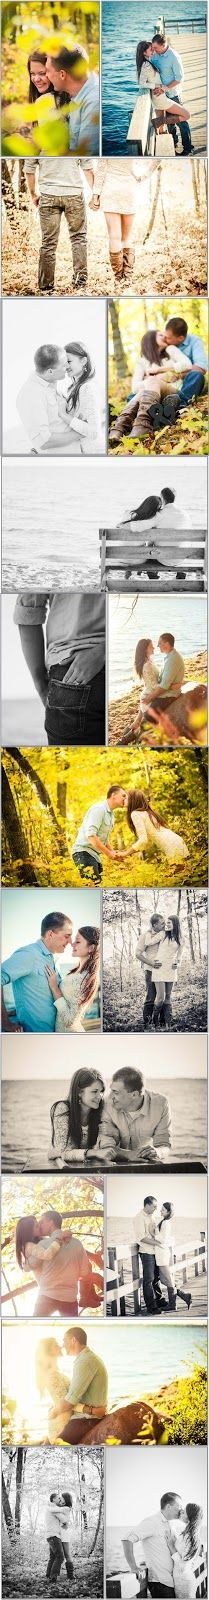 Fall & Lake pics, I love some of these ideas for me and my husband!!!